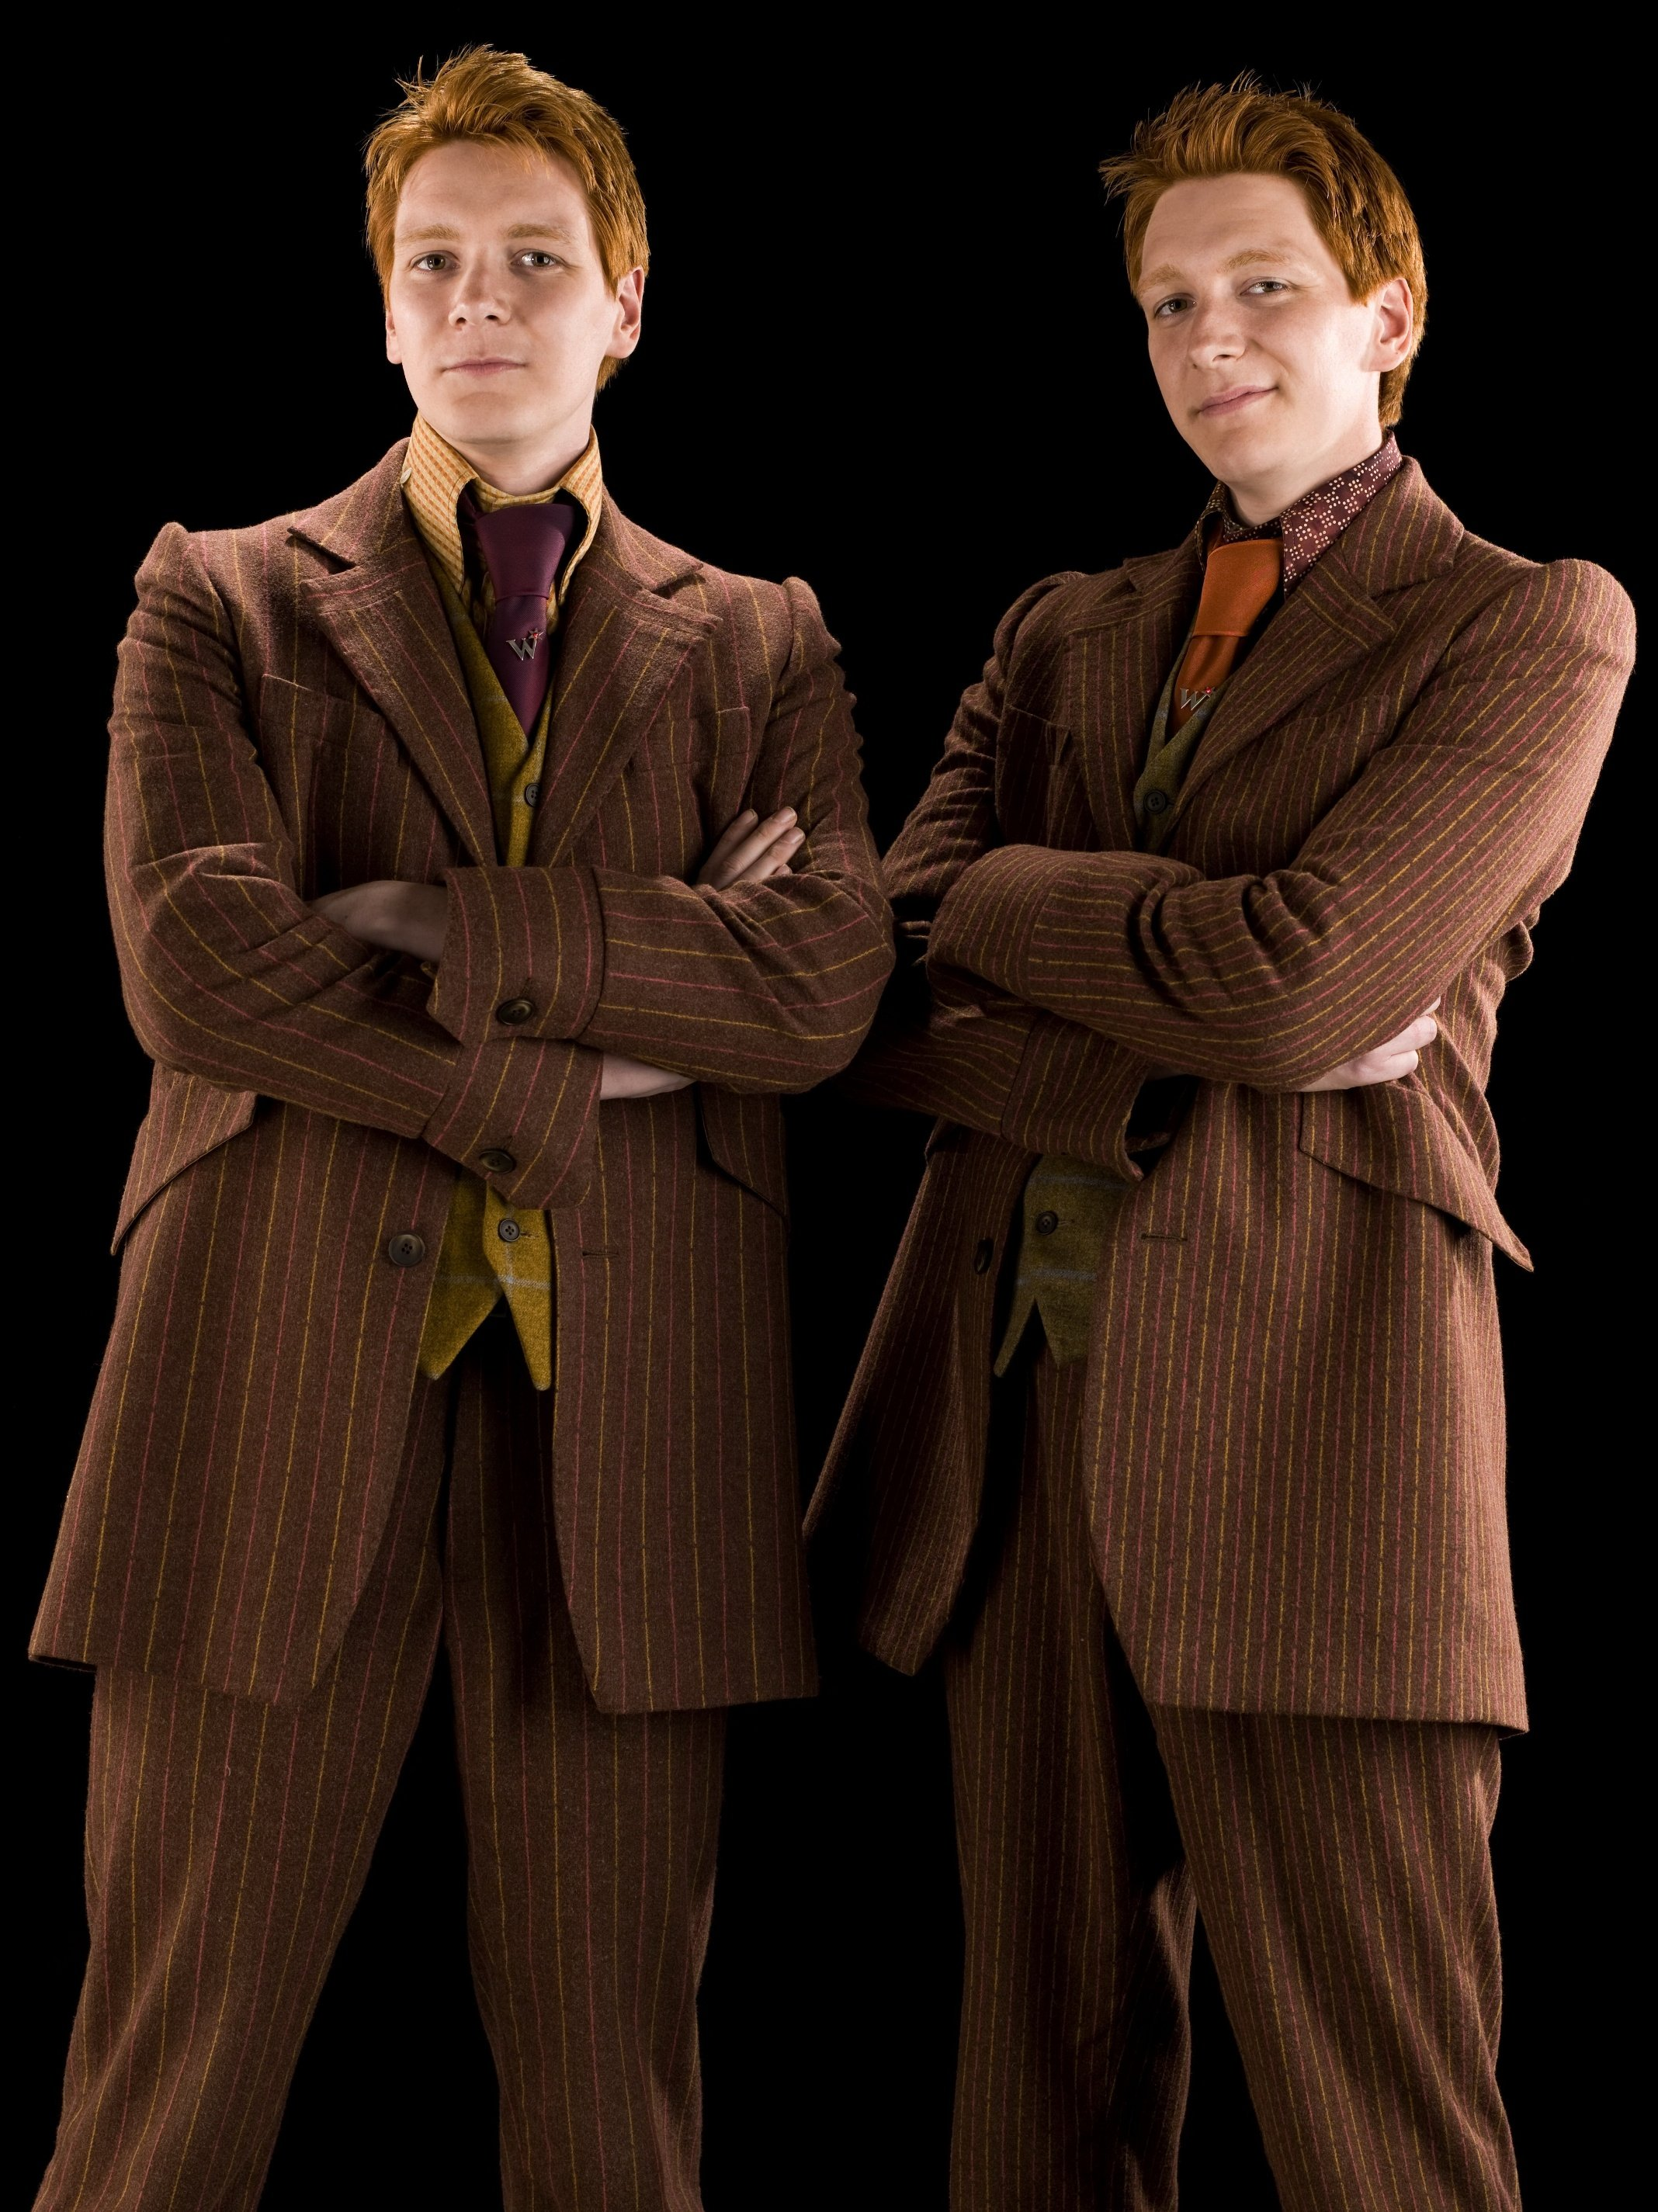 Bestand:Fred and George Weasley (HBP promo) 2.jpg